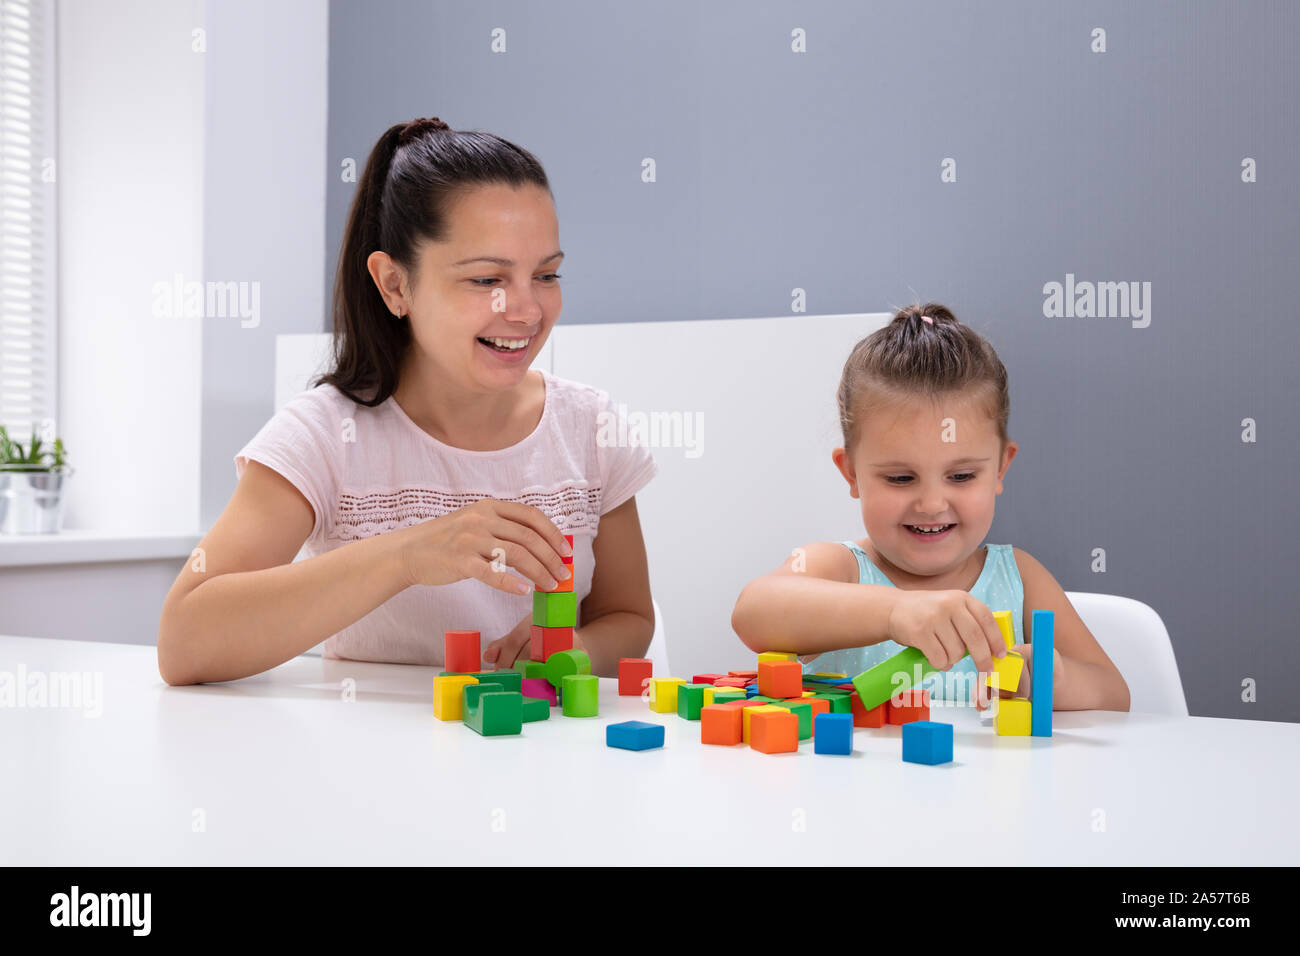 Smiling Daycare Worker Playing With Child Stacking Building Blocks On White Desk Stock Photo